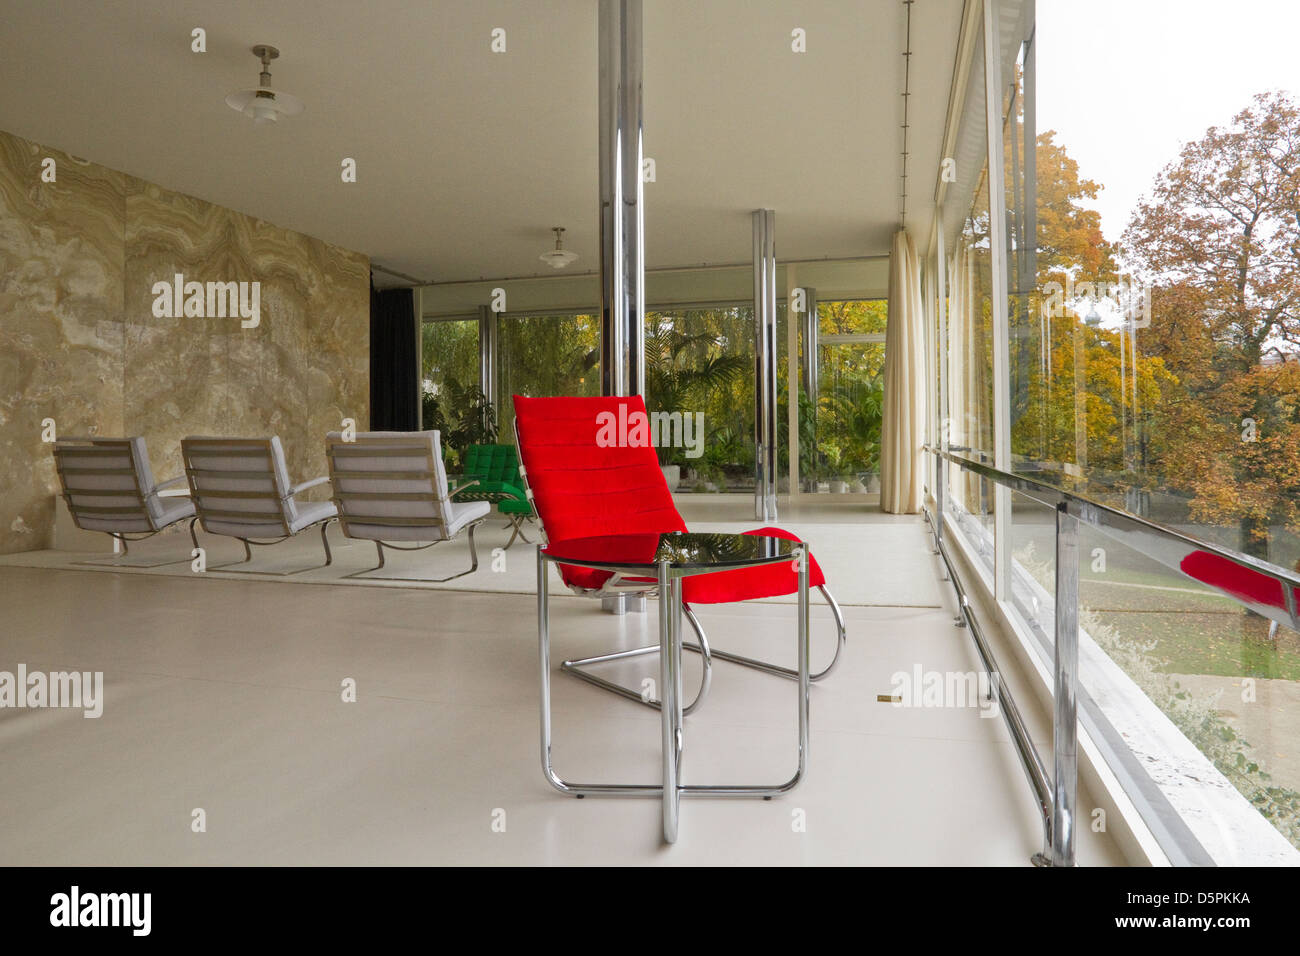 Mies Van Der Rohe Sessel Villa Tugendhat Mies Van Der Rohe Red Chair Stock Photo 55202766